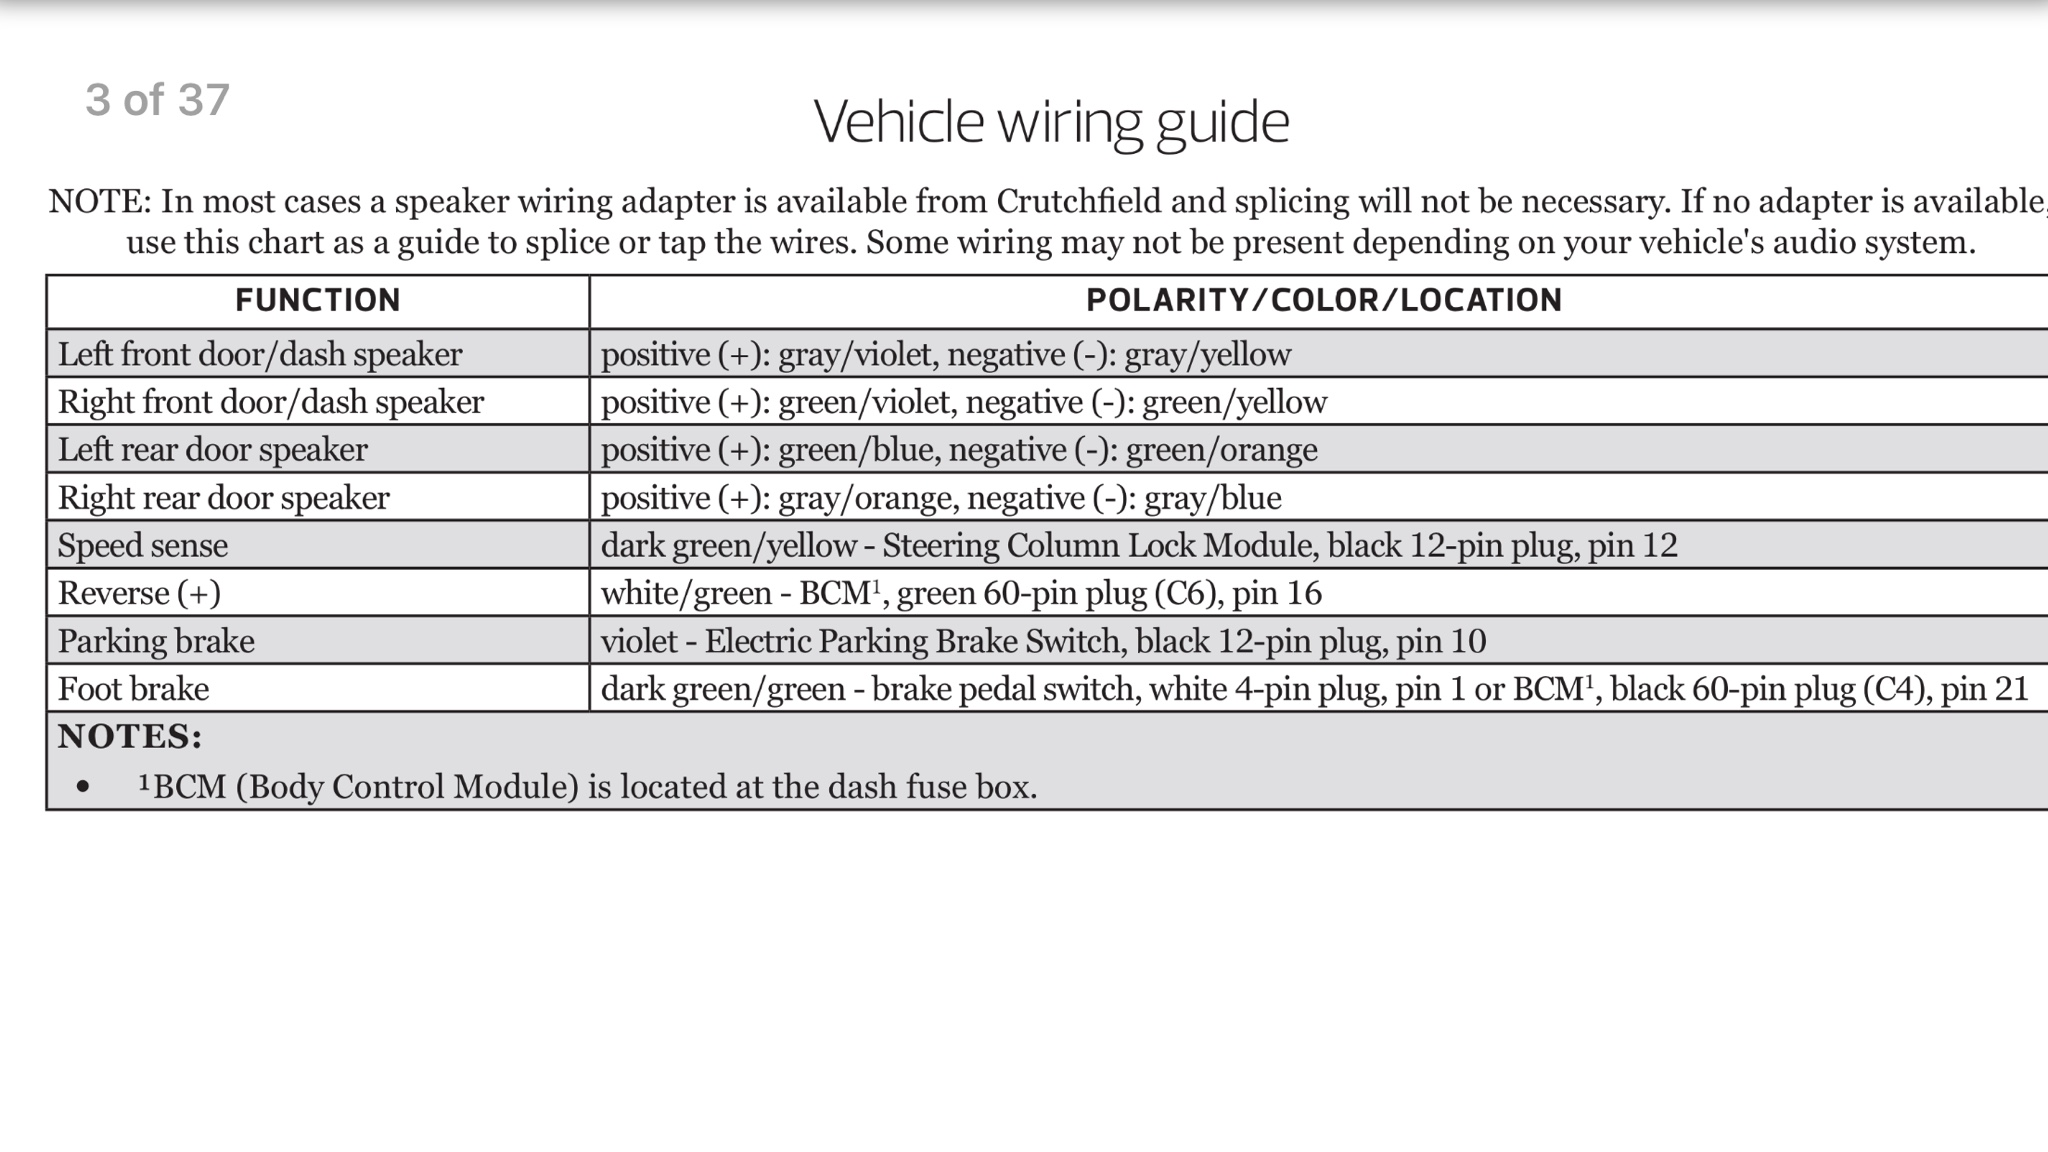 [FPWZ_2684]  2018 Wiring Diagram? | My Jeep Compass Forum | Wiring Diagram Starter Compass |  | Jeep Compass Forum